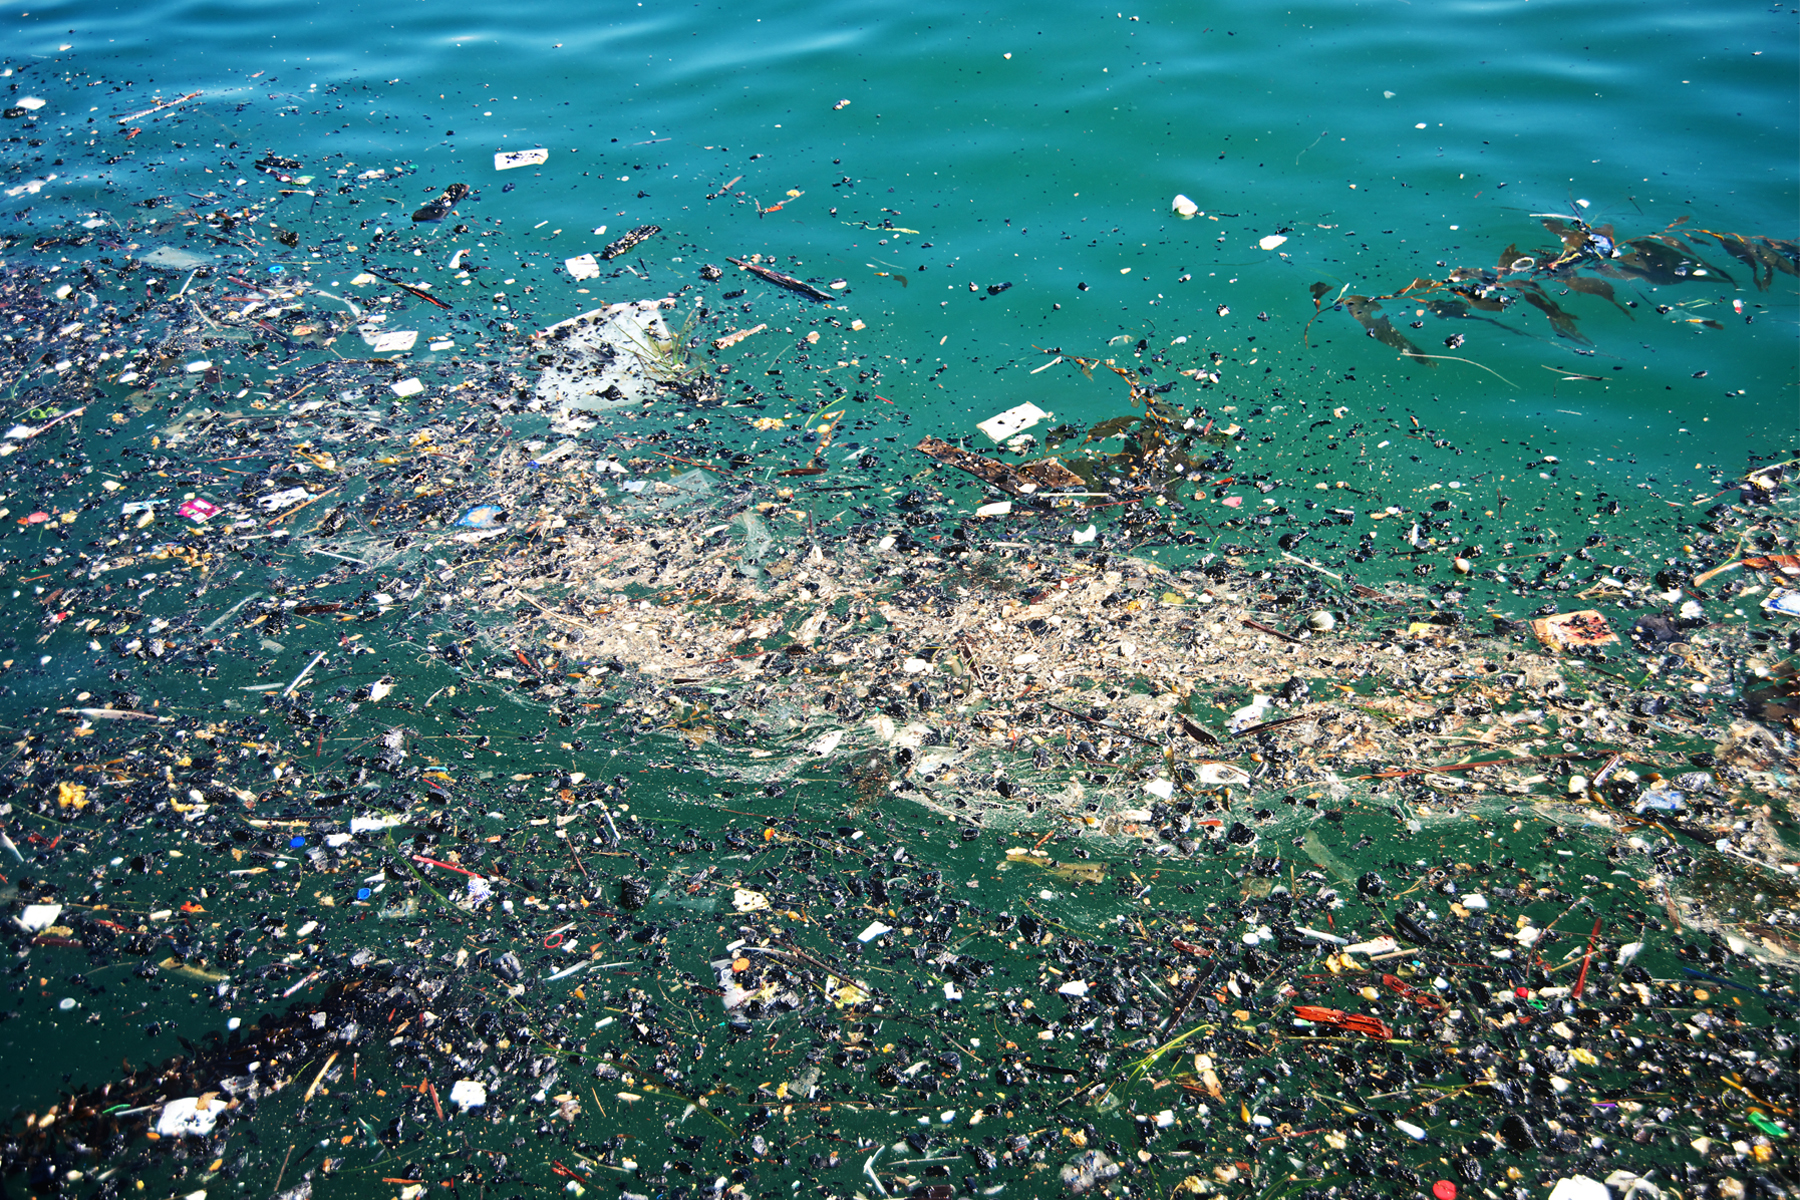 Some of the garbage in the Great Pacific Garbage Patch. Photo courtesy of How Stuff Works.